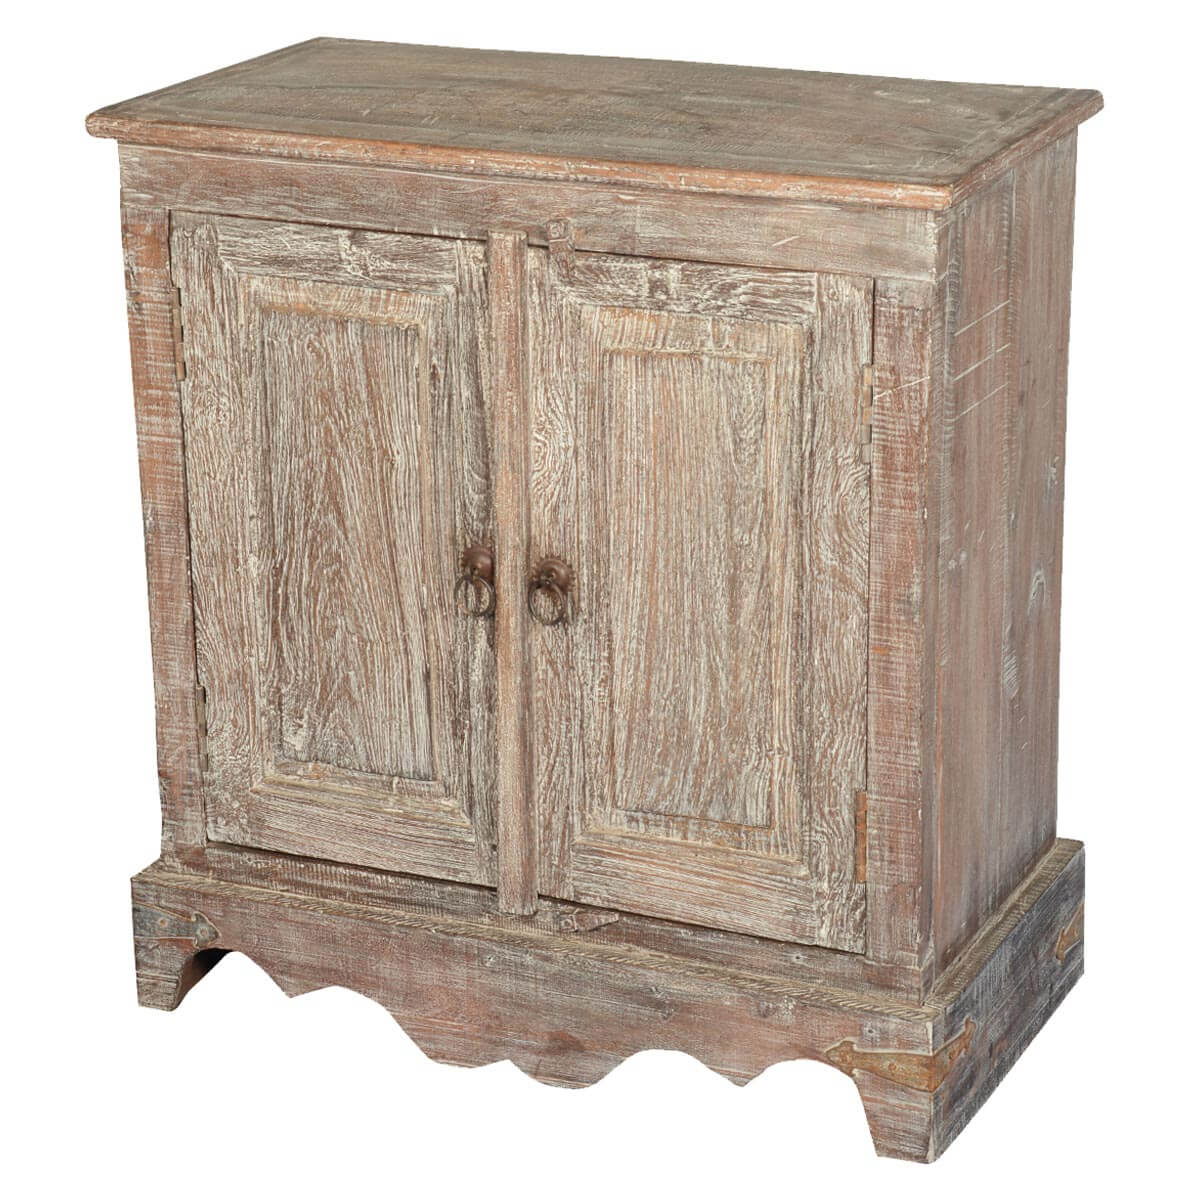 Very Impressive portraiture of Pennsylvania Dutch Rustic Reclaimed Wood 2 Door Cabinet with #AB8020 color and 1200x1200 pixels